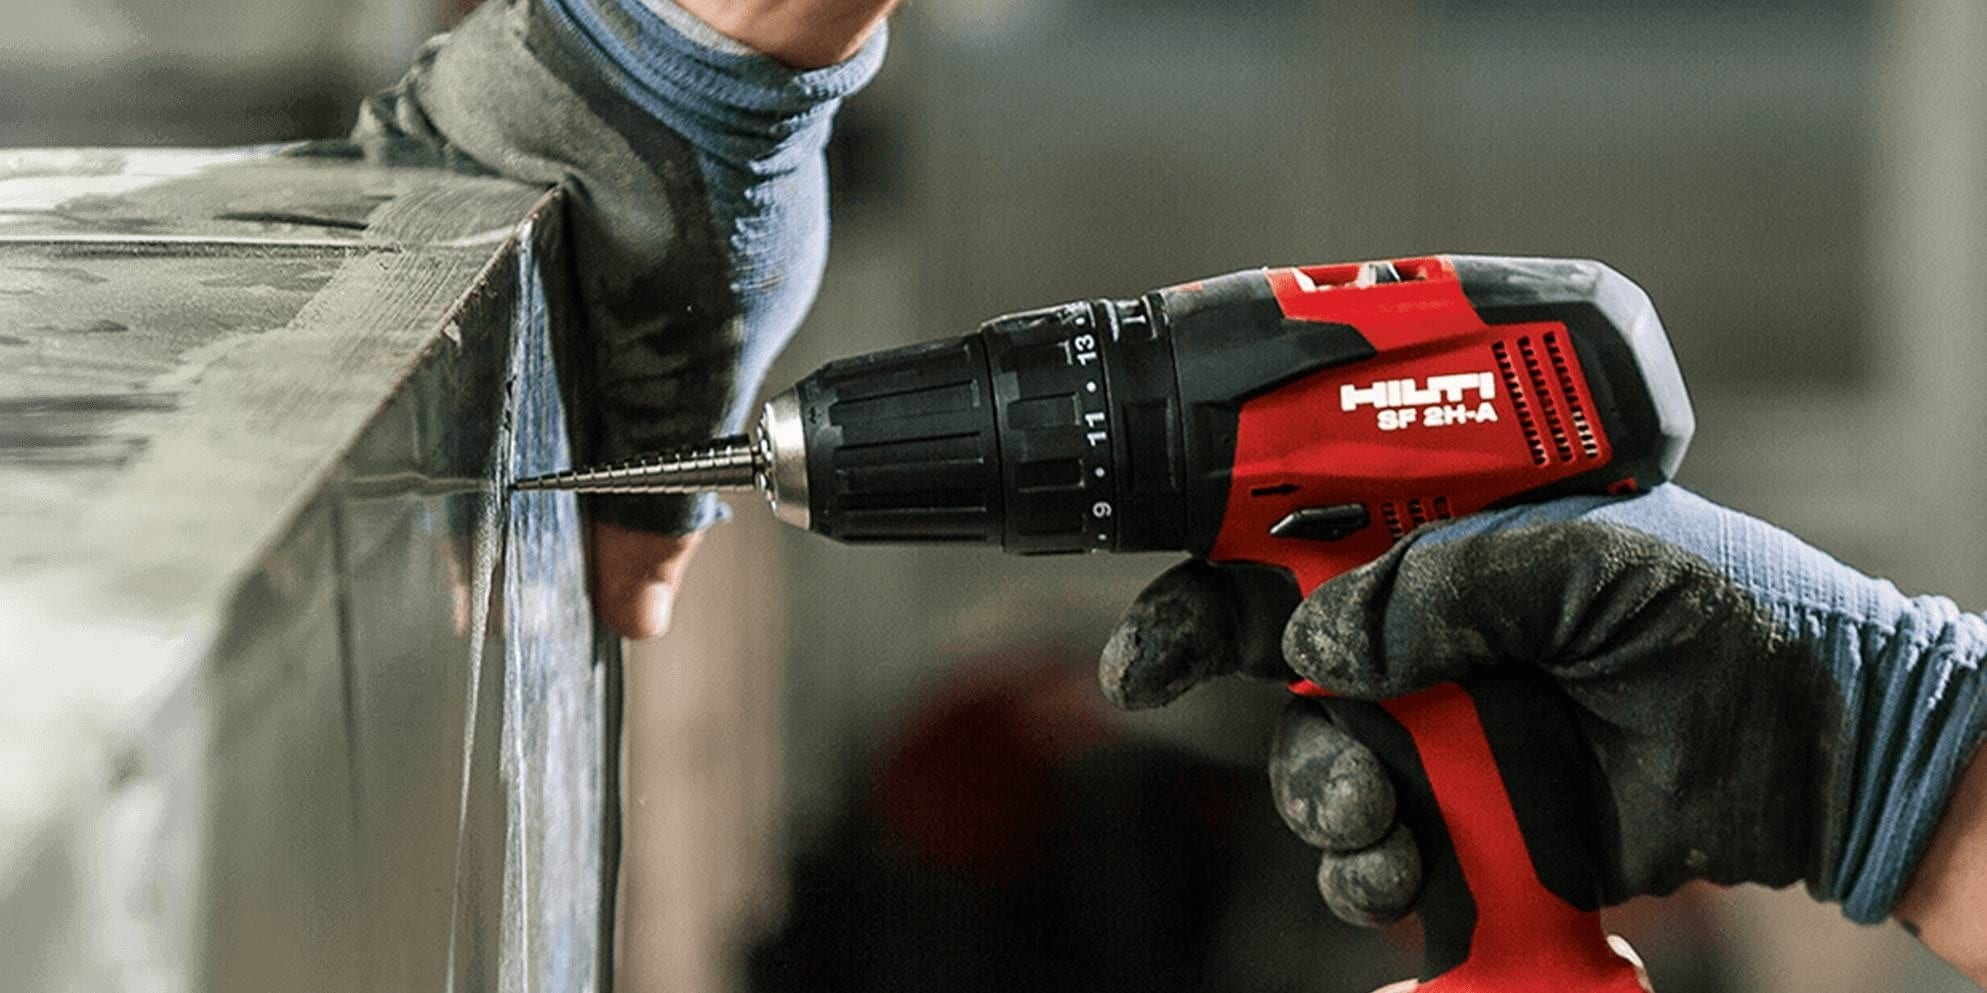 Drilling Into Metal with a Cordless Drills